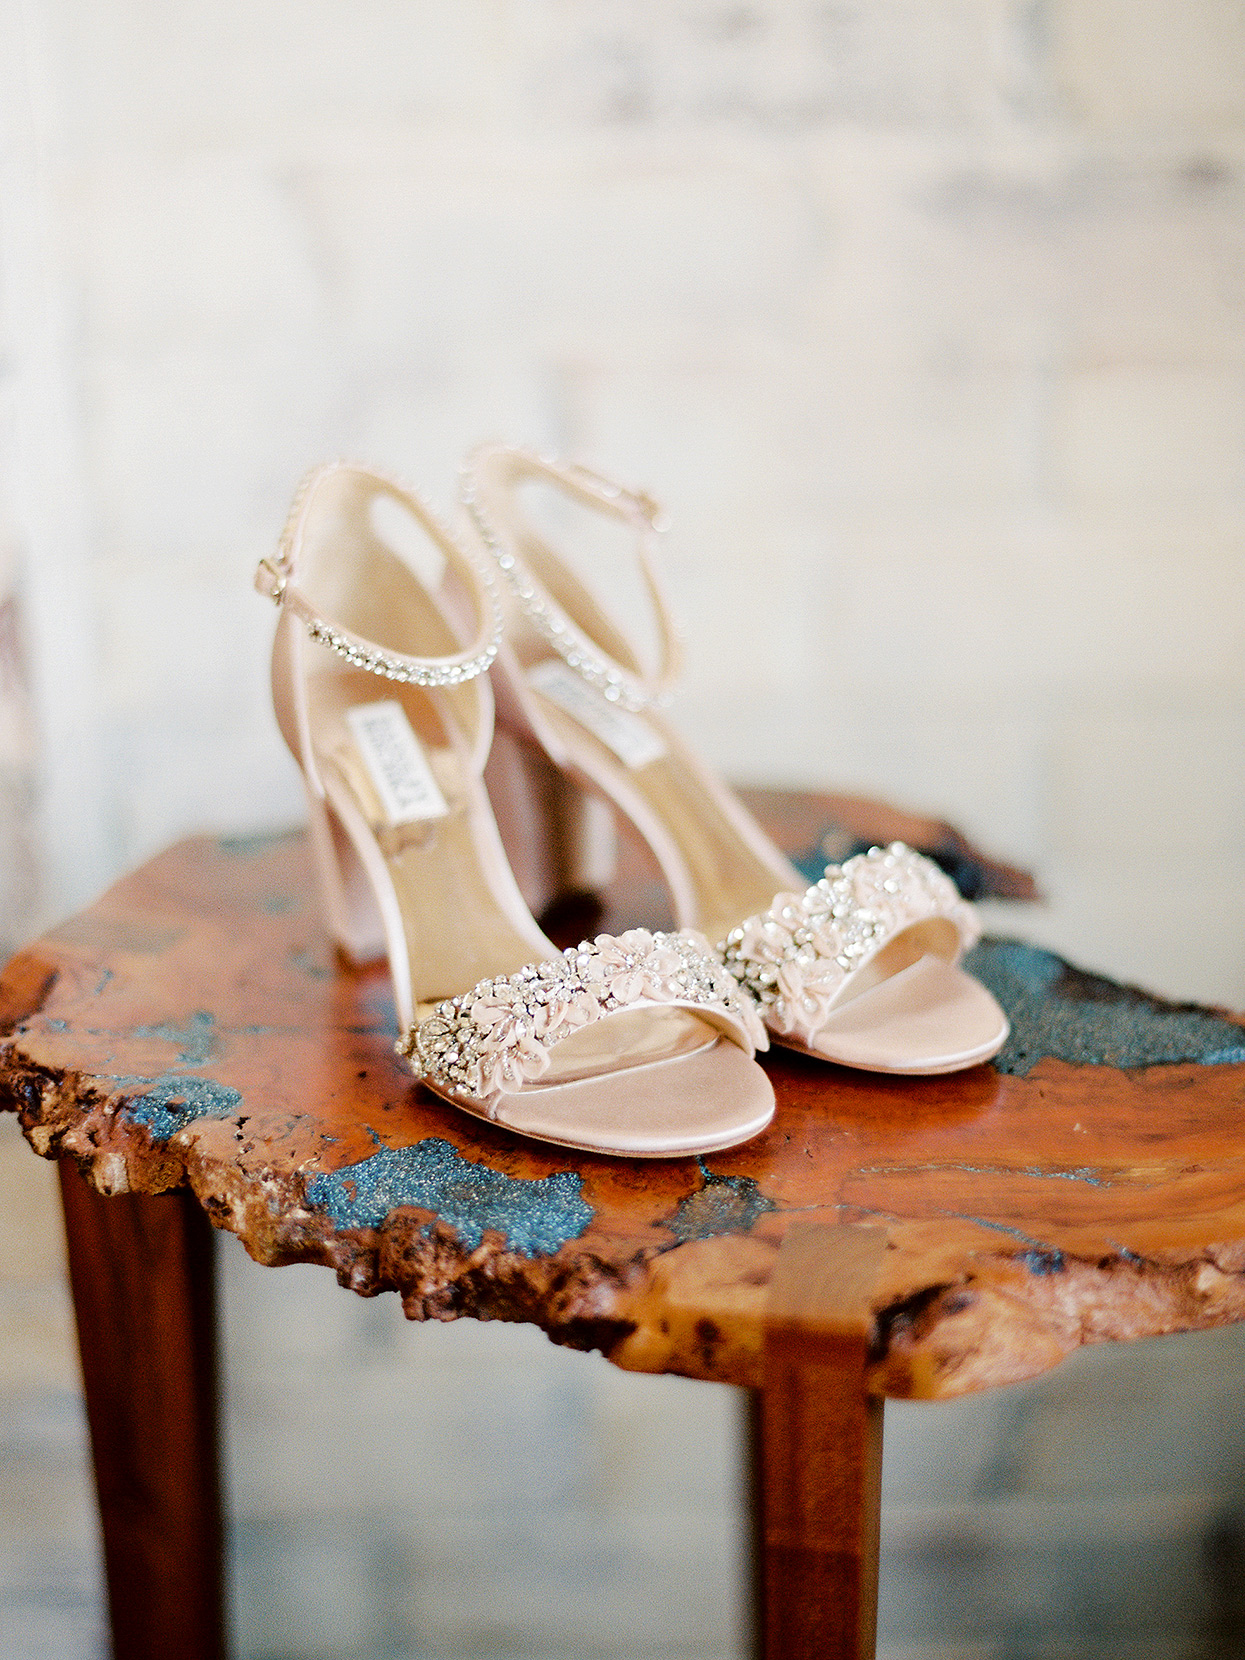 The bride Claire's wedding shoes on natural side table